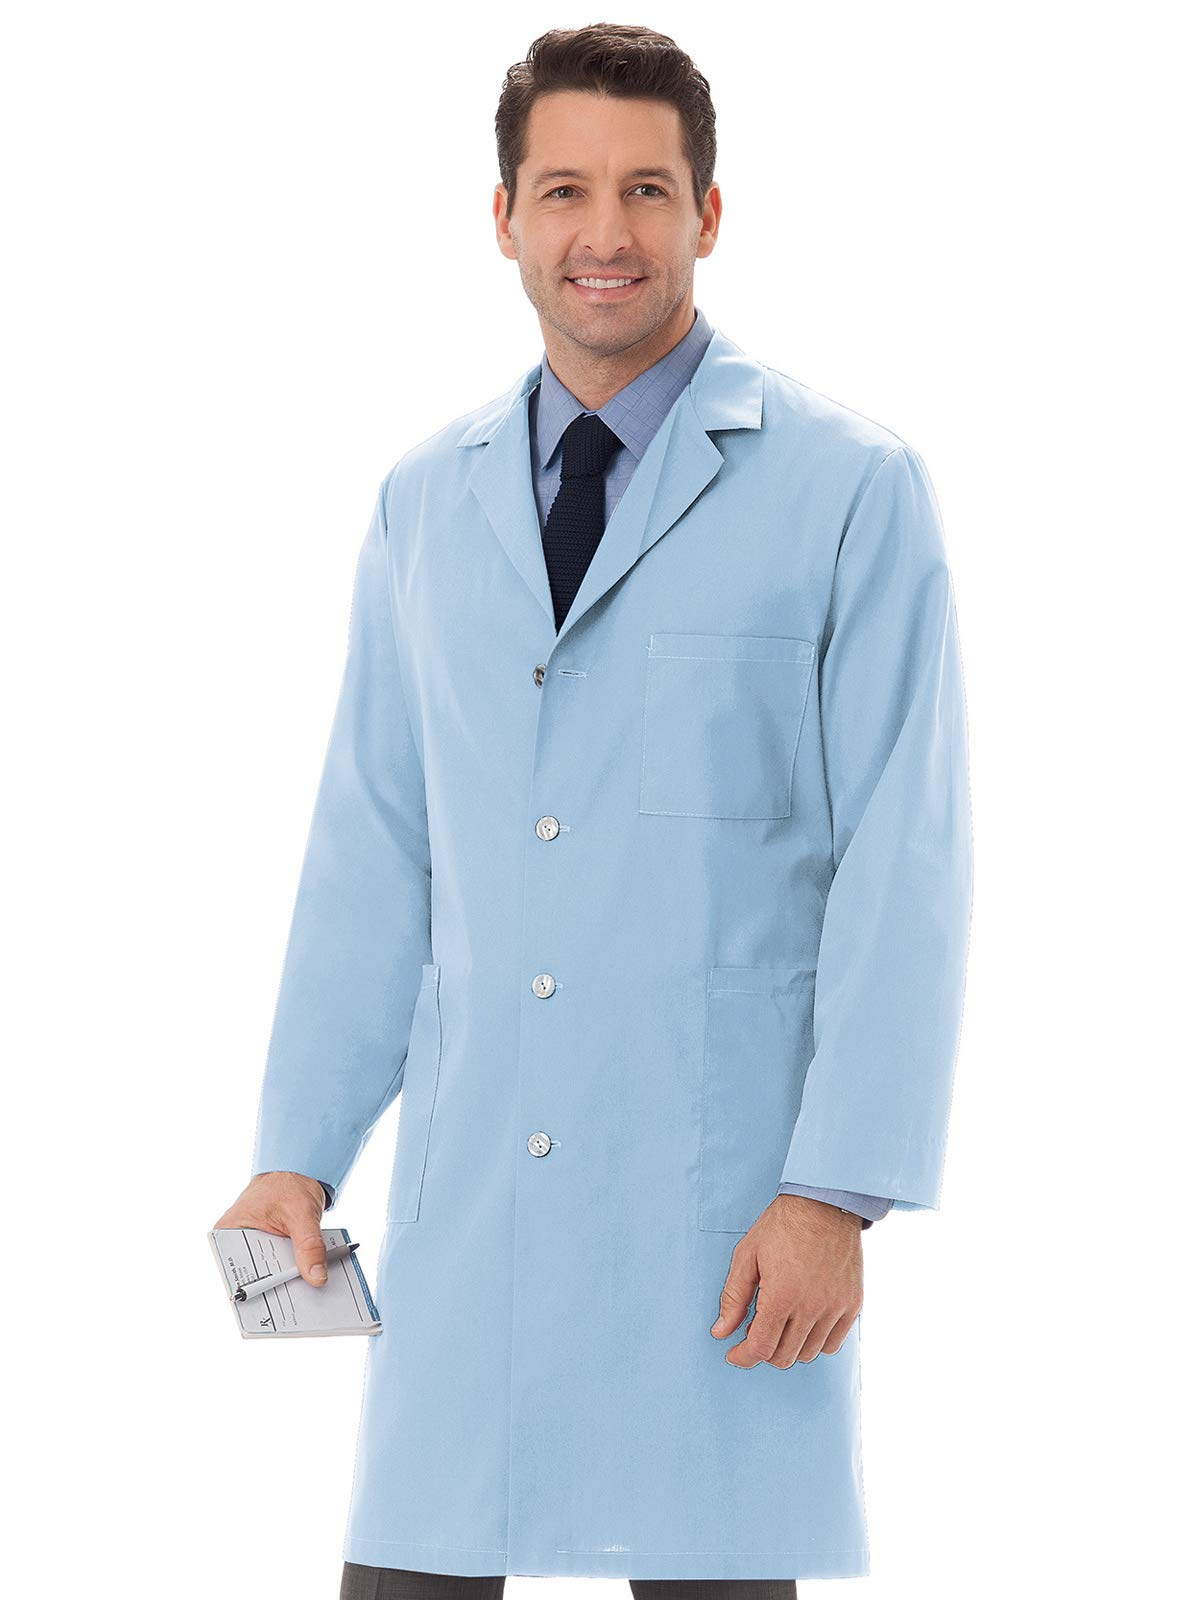 Meta 61166 Unisex 40'' Labcoat Light Blue Medium